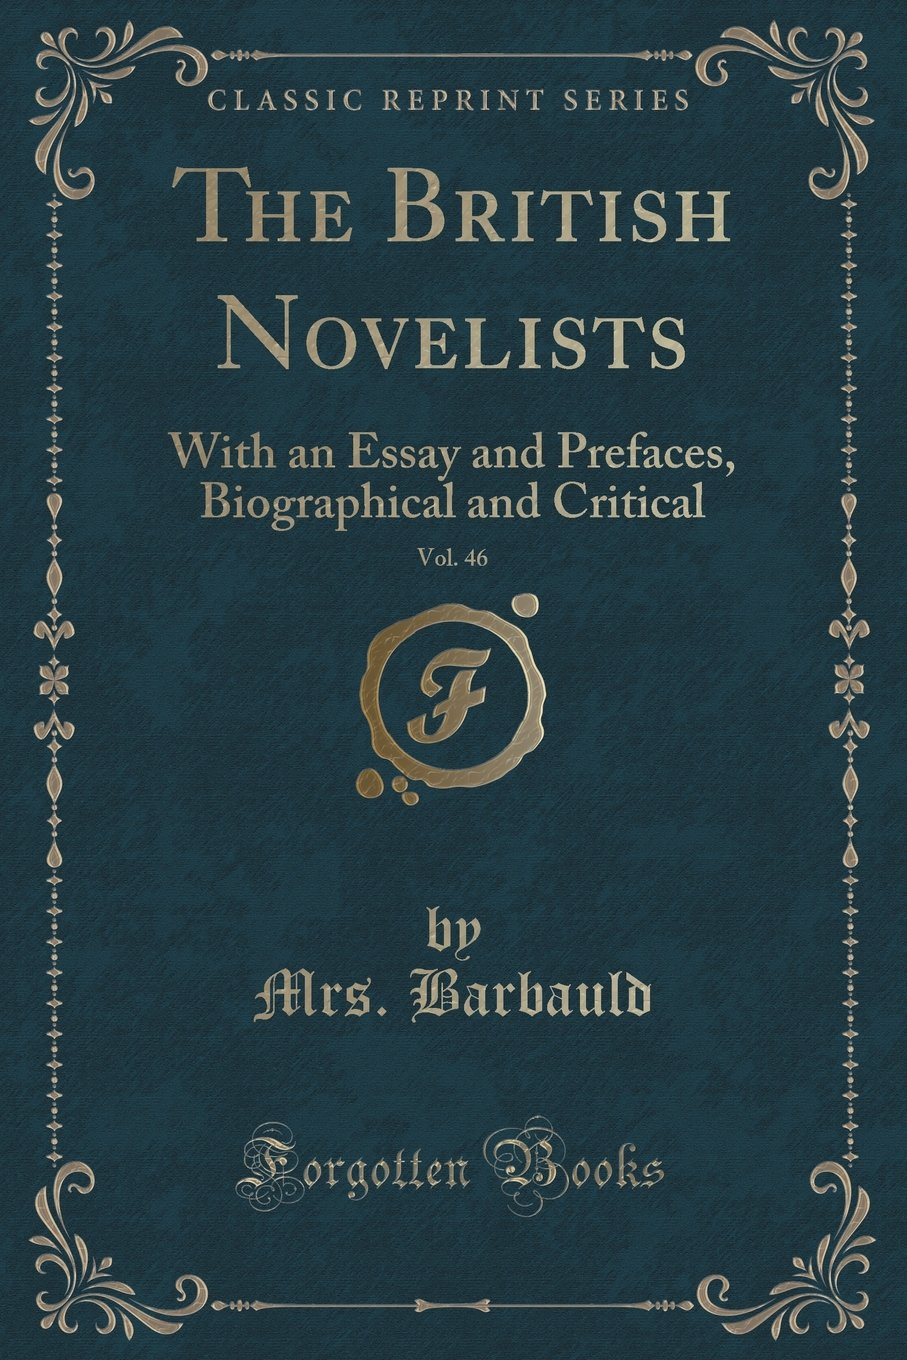 The British Novelists, Vol. 46: With an Essay and Prefaces, Biographical and Critical (Classic Reprint) pdf